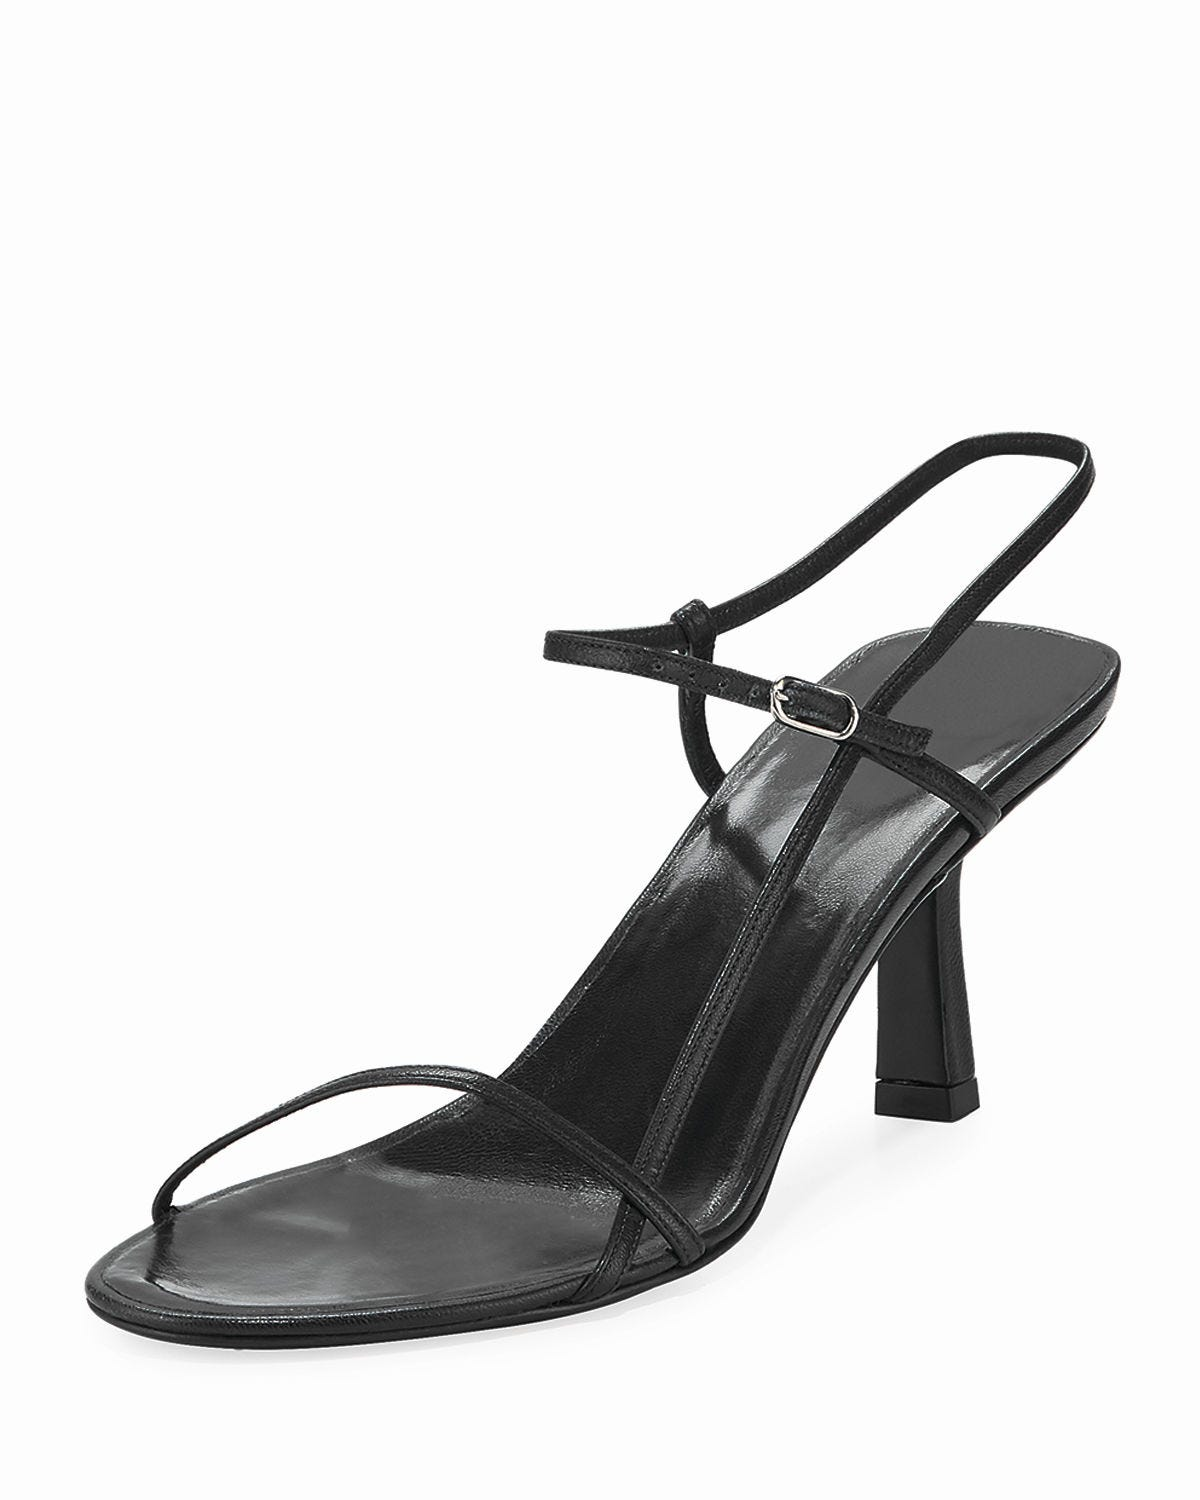 Heights Sandals To 2019 Buy Strappy In All Heel Black trQsdCxh